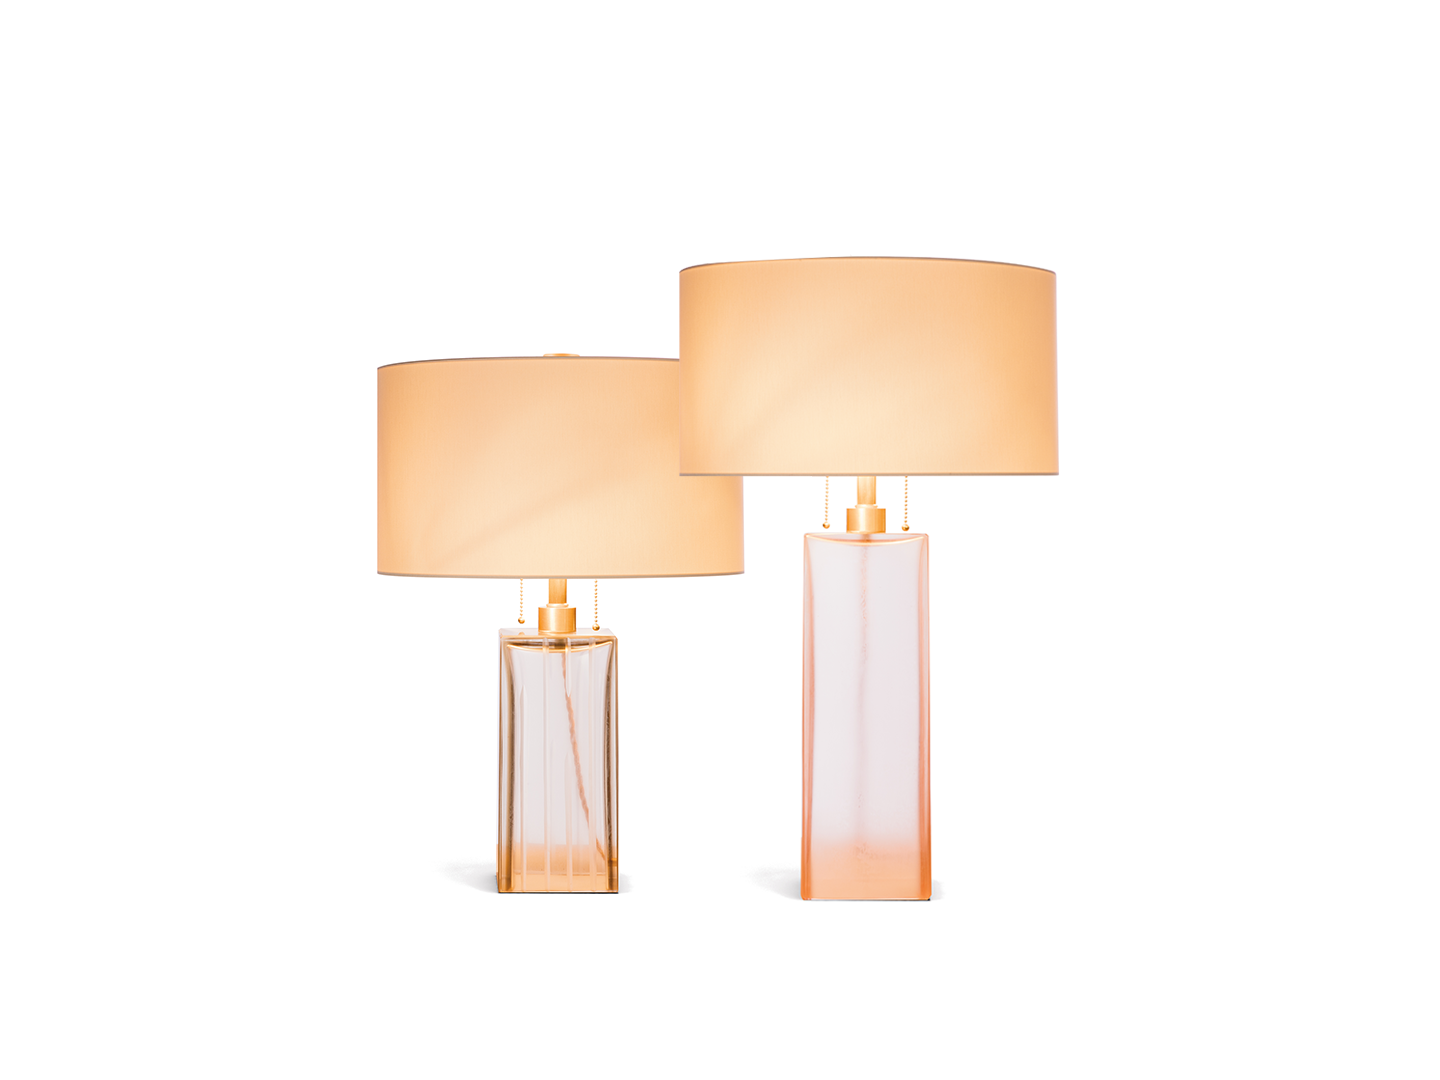 Nettuno table lamp